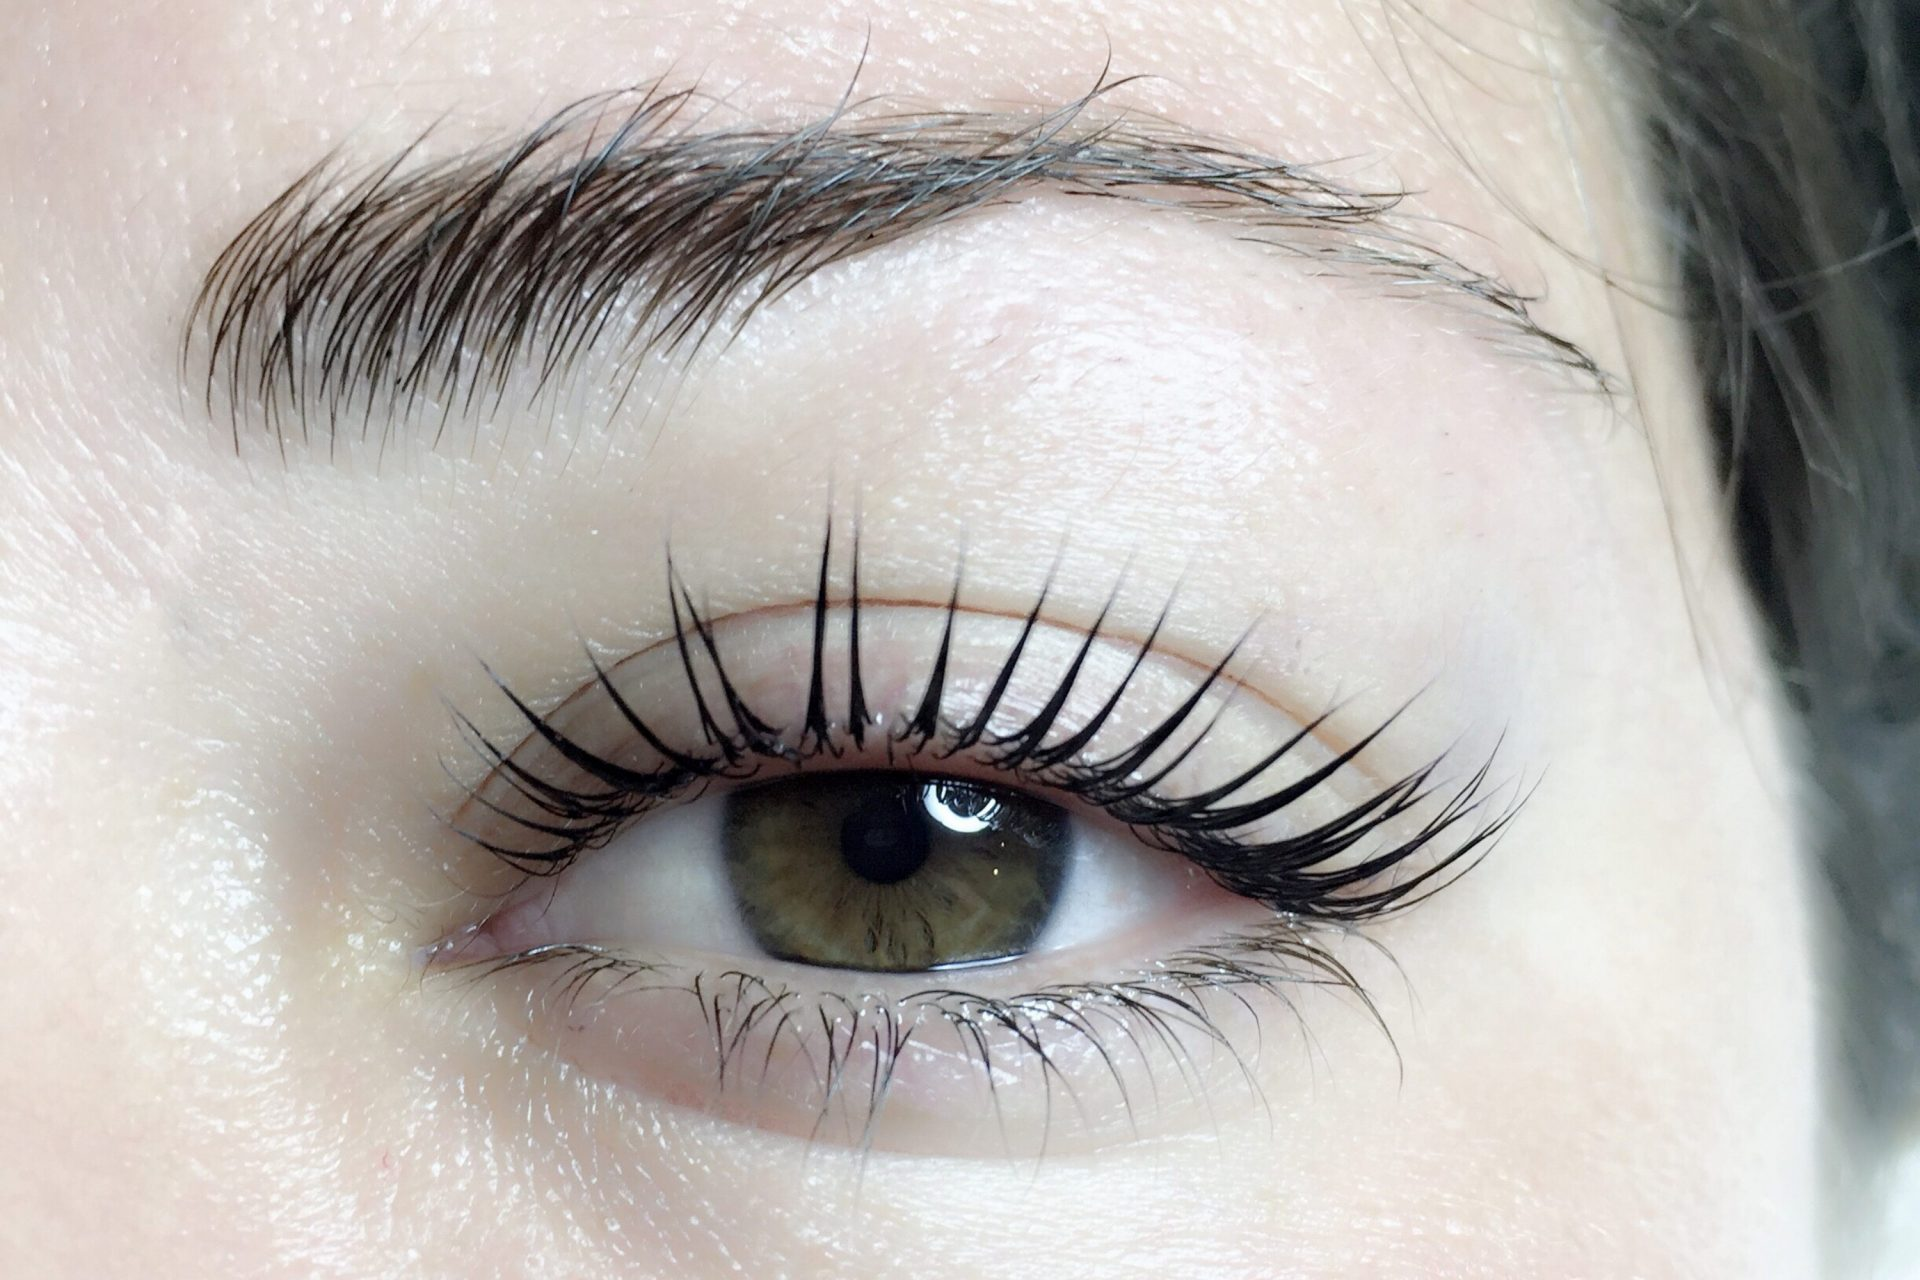 12c64634f6b We tried keratin lash treatment for naturally lifted, eye-opening lashes